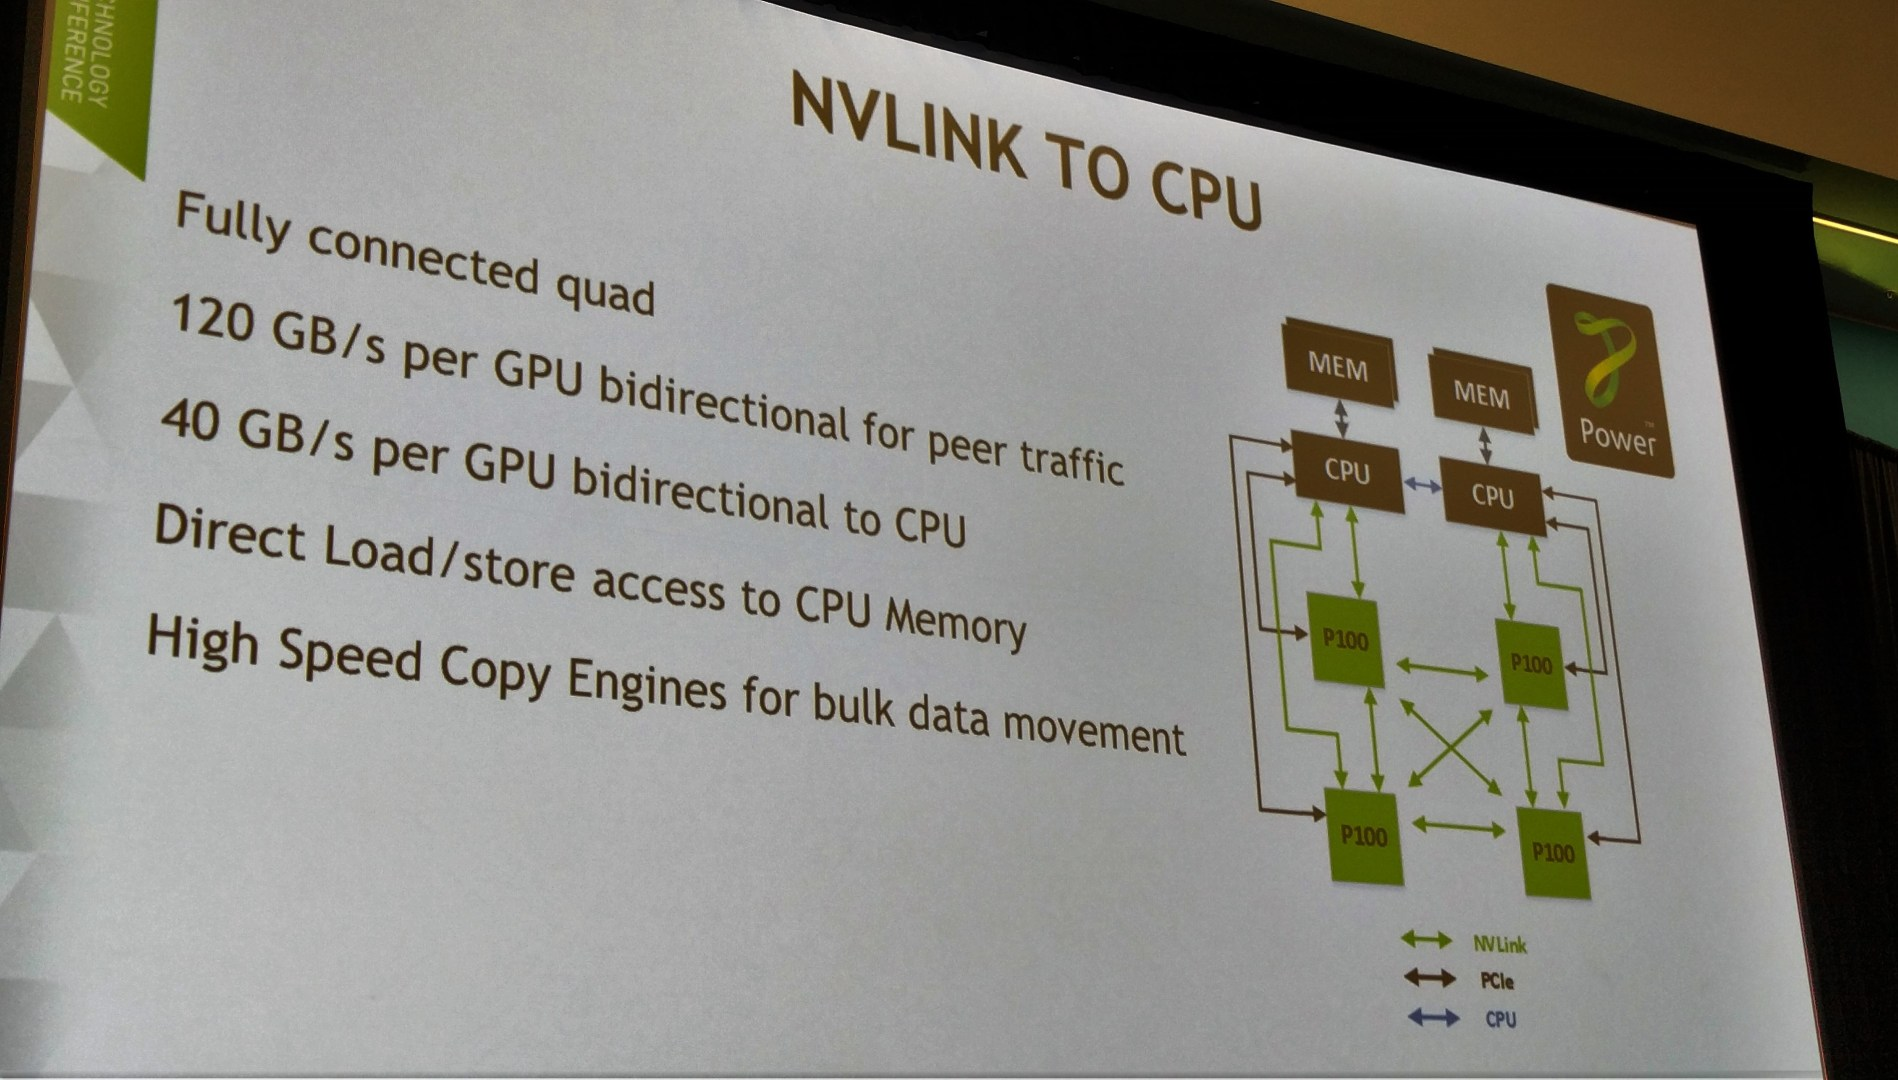 How NVLink connects to a CPU